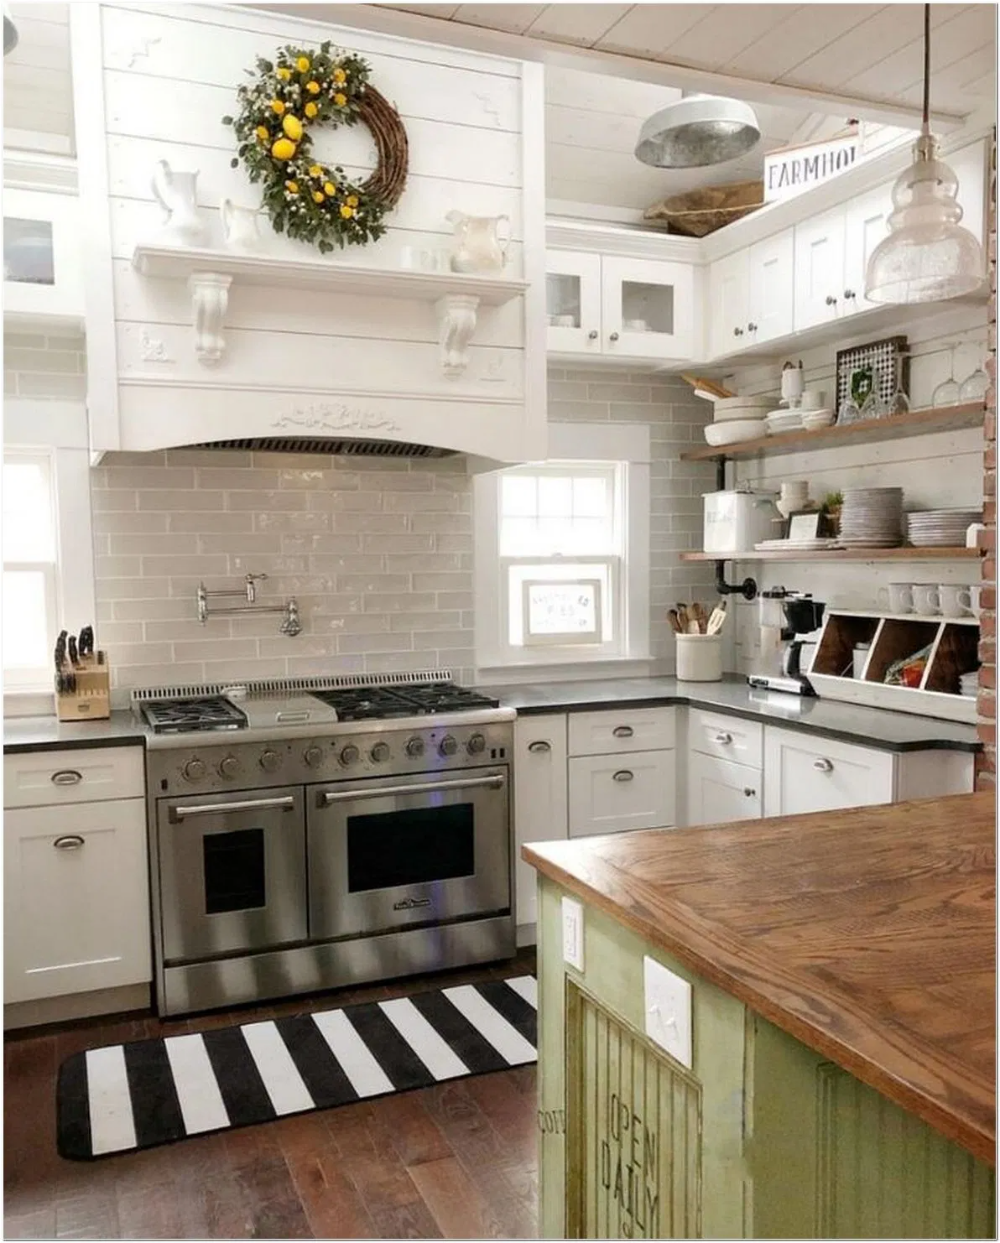 91 The New Orleans Style Farmhouse Kitchen And Black Kitchen Cabinets 20 In 2020 Farmhouse Kitchen Design Elegant Kitchen Design Building A Kitchen